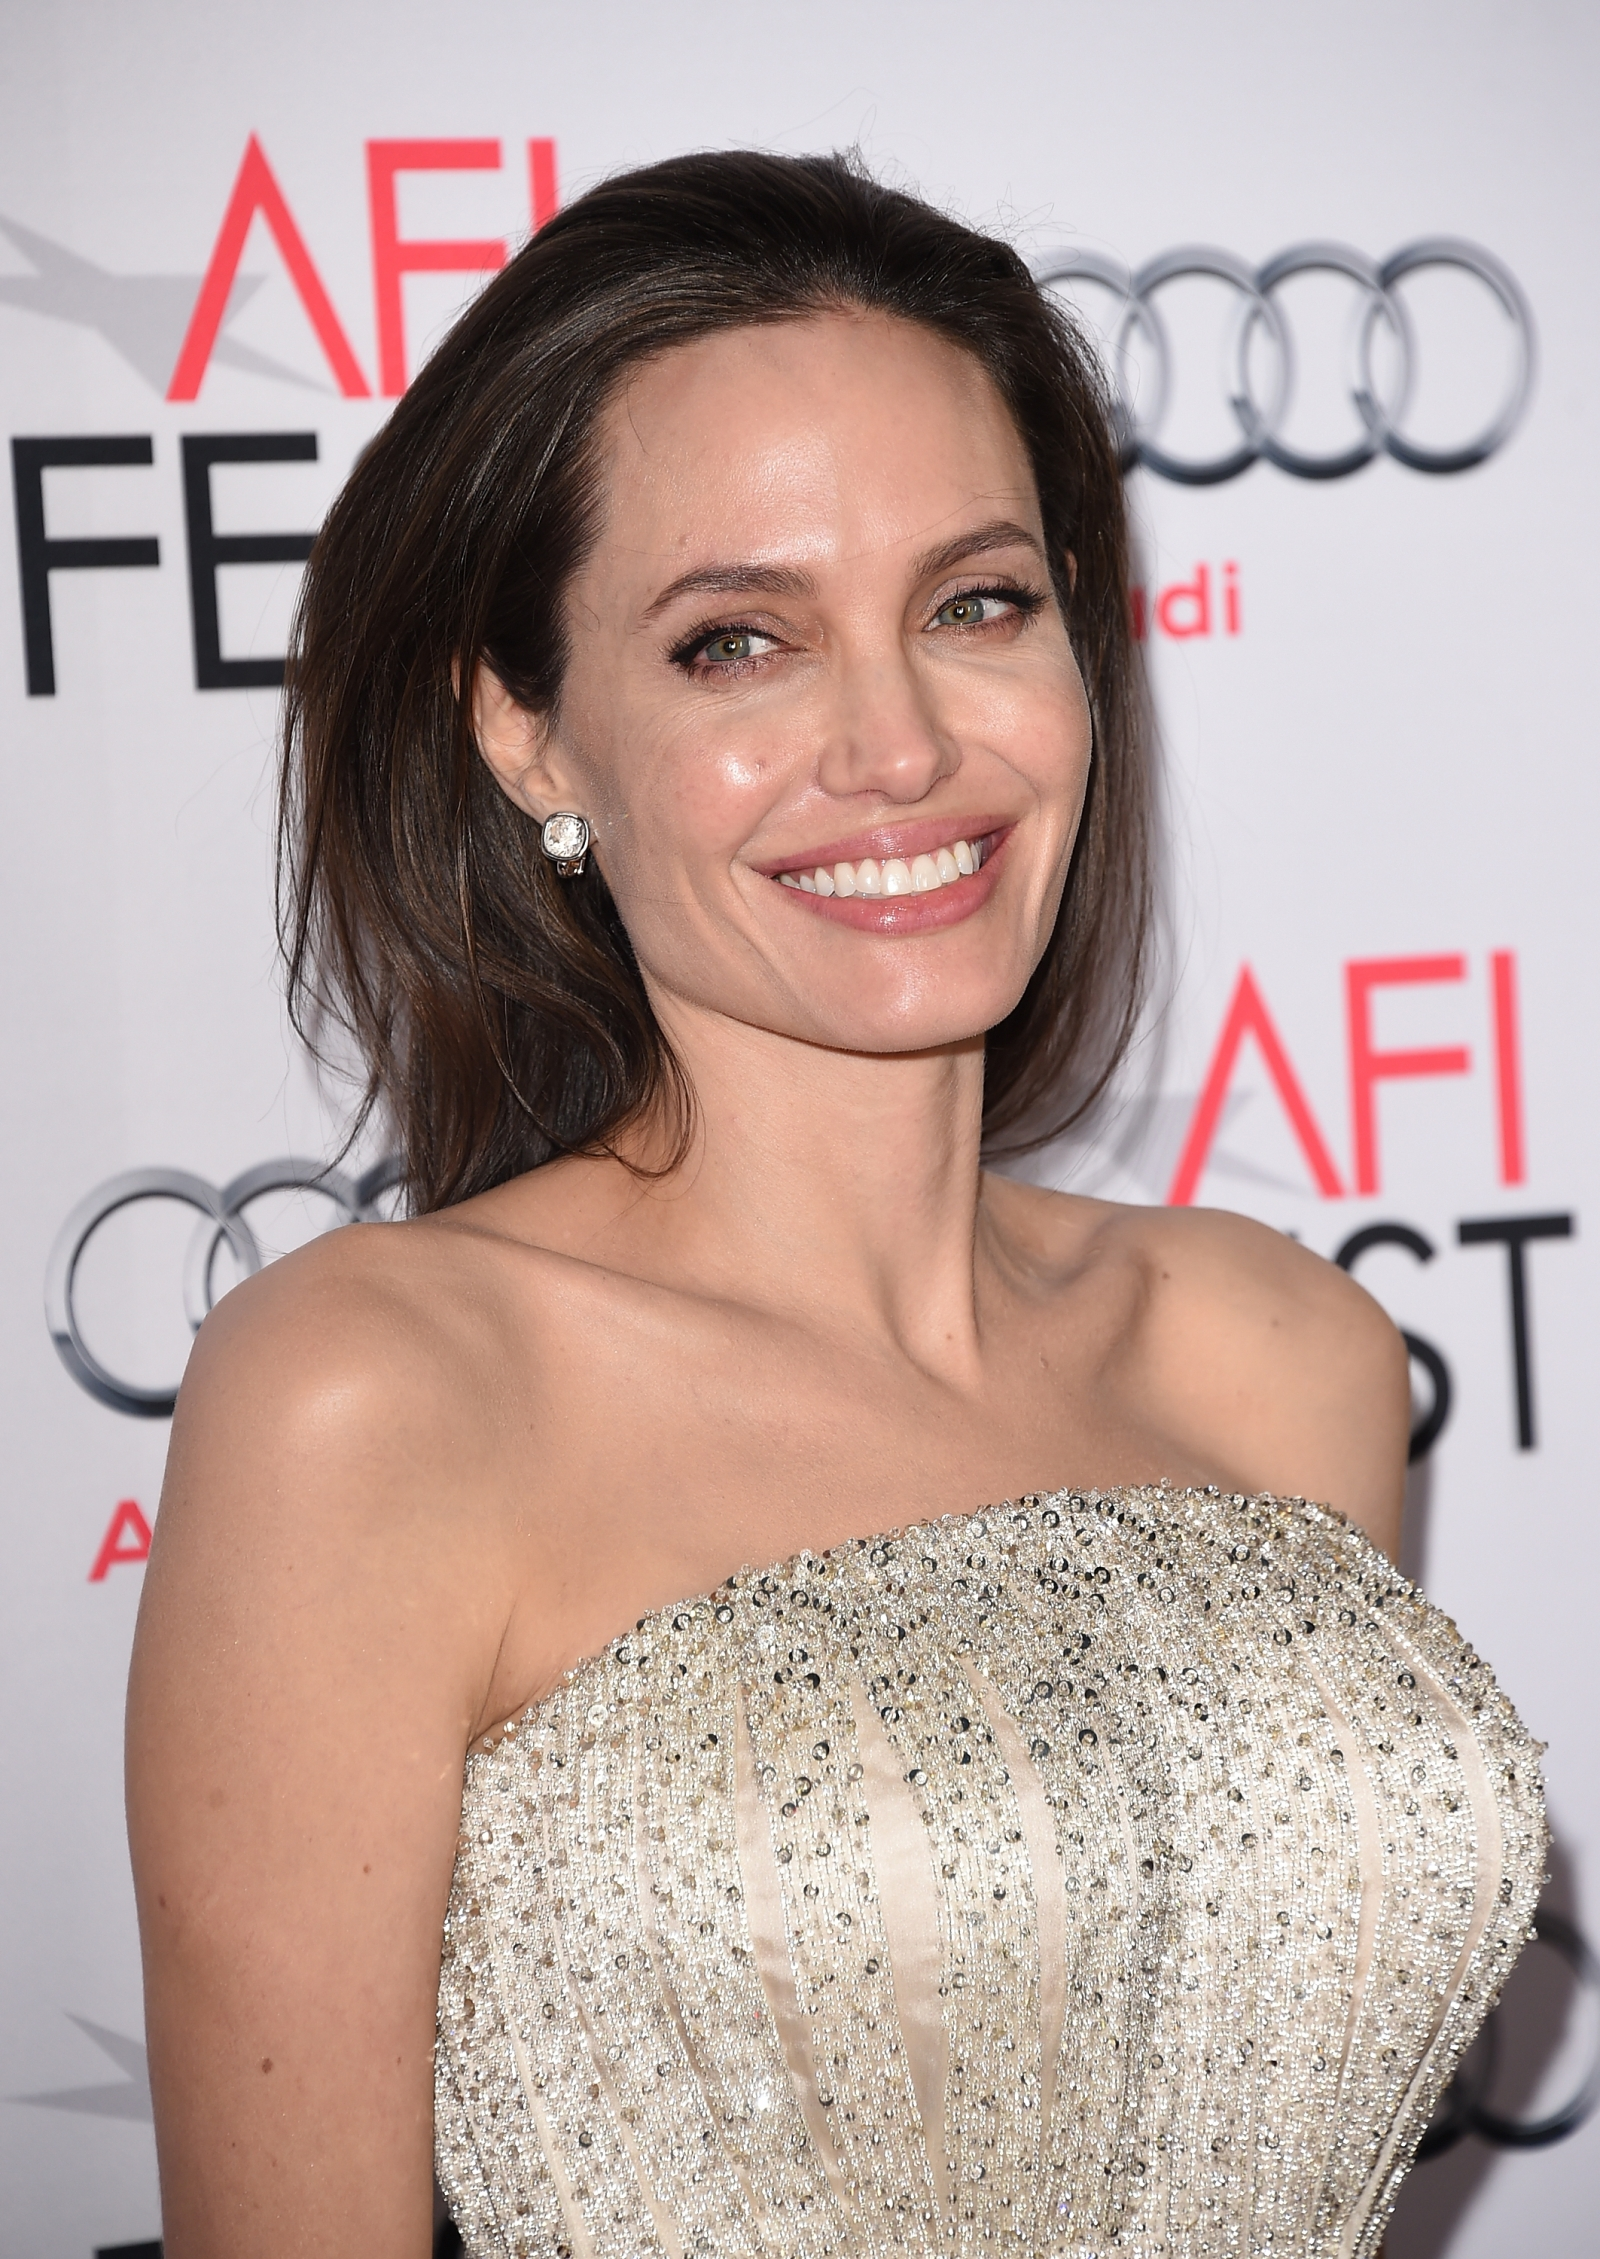 Angelina Jolie 'frustrated and hurt' as Brad Pitt ... Angelina Jolie